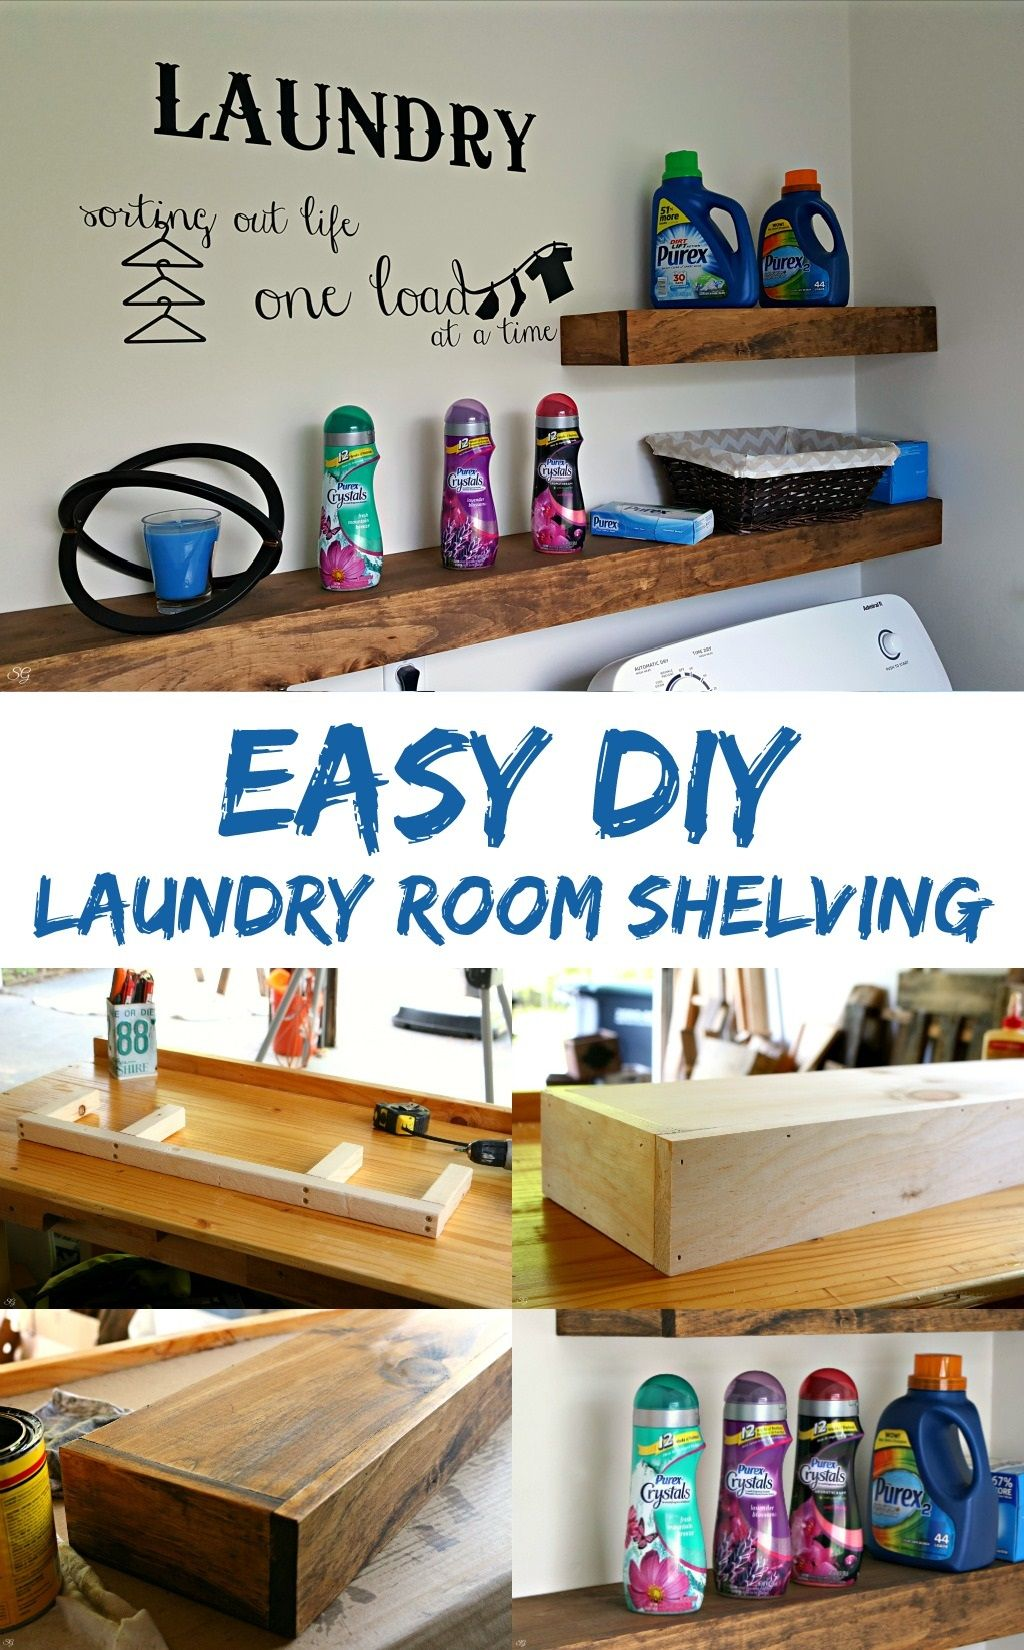 freshen your laundry room with this easy diy floating shelf shelves project learn how build for storage drawers kitchen open design glass window ikea malm tall slim shoe bar and